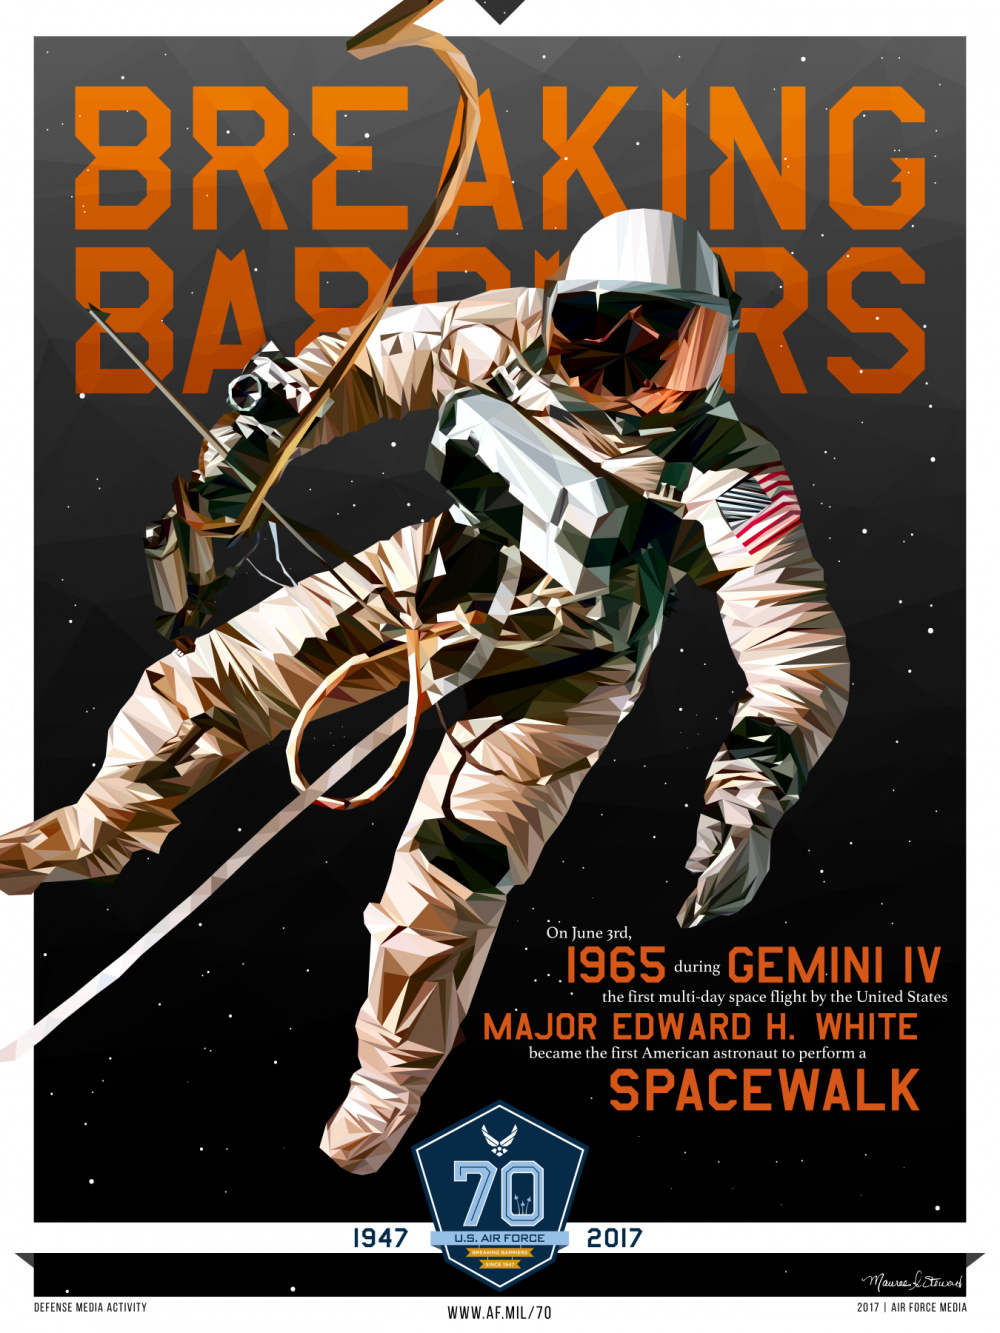 Breaking Barriers-Spacewalk (3 of 8)